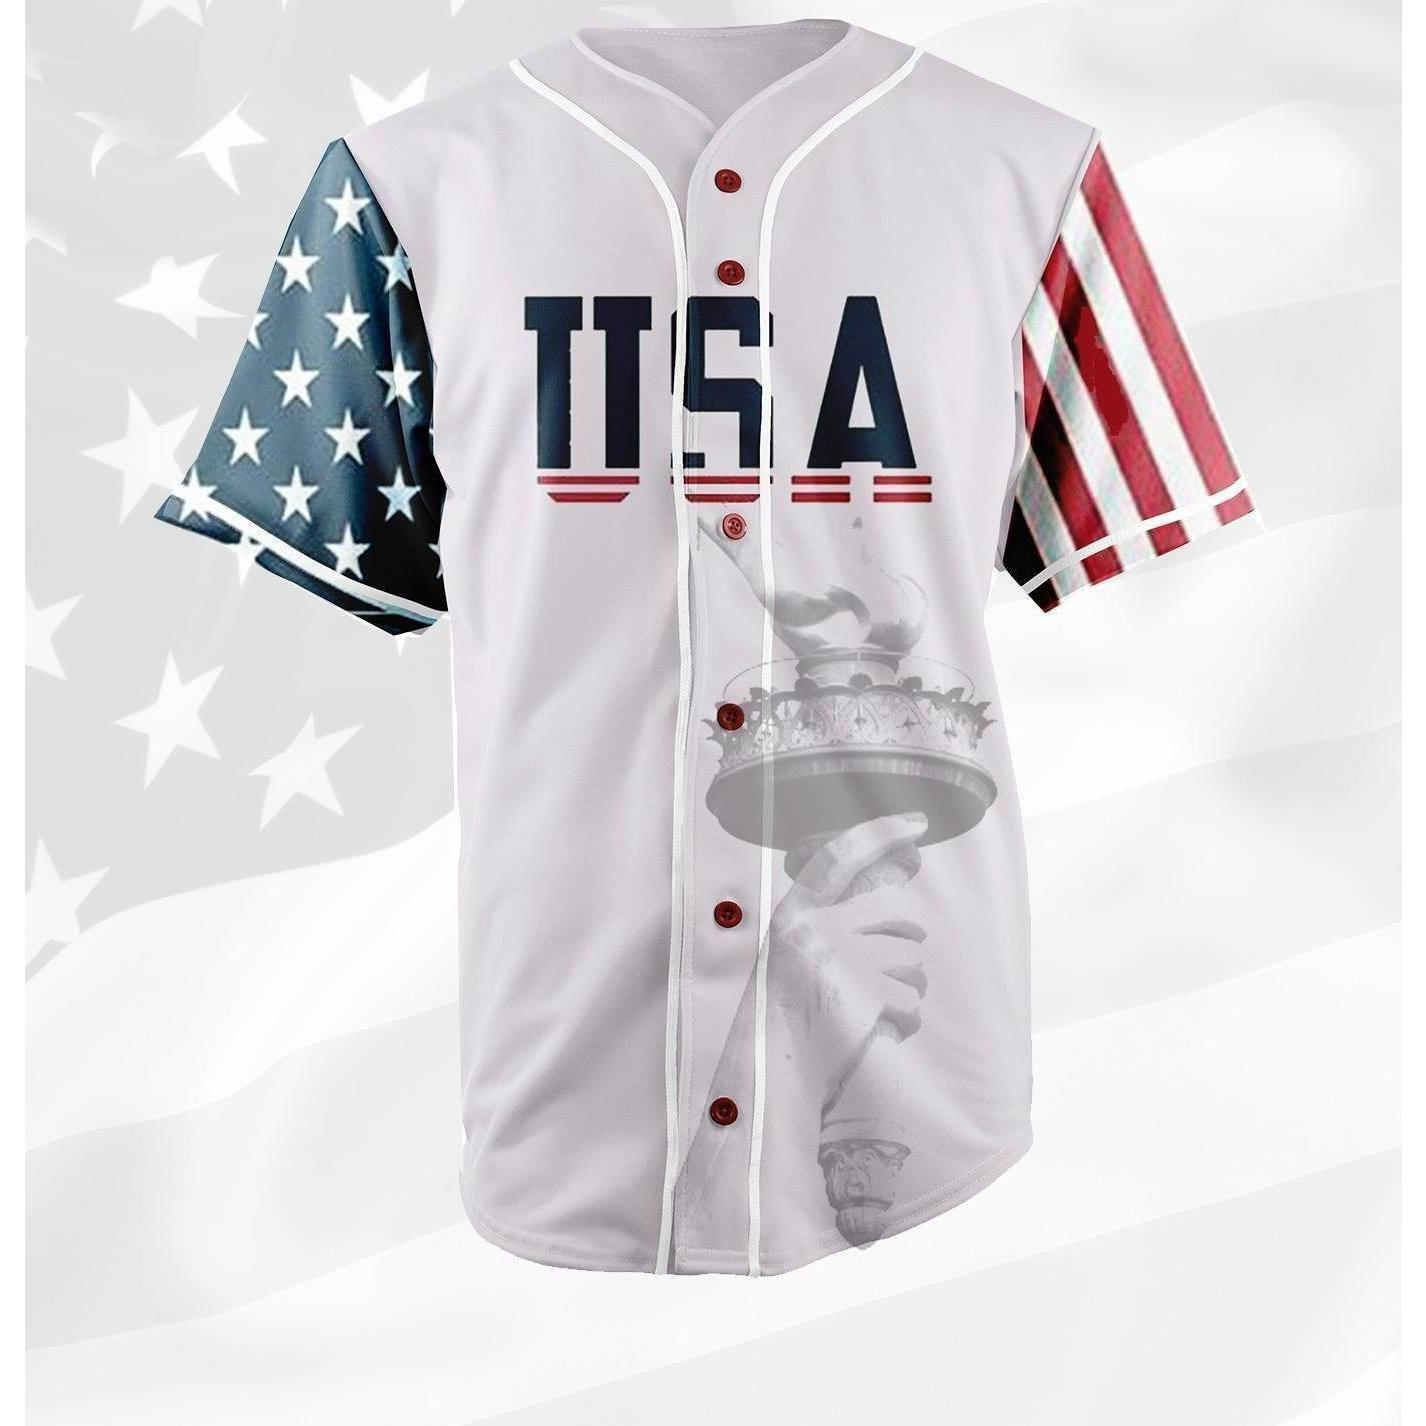 d0f0e2717 Trump USA 45 Baseball Jersey - Jersey Champs - Custom Basketball